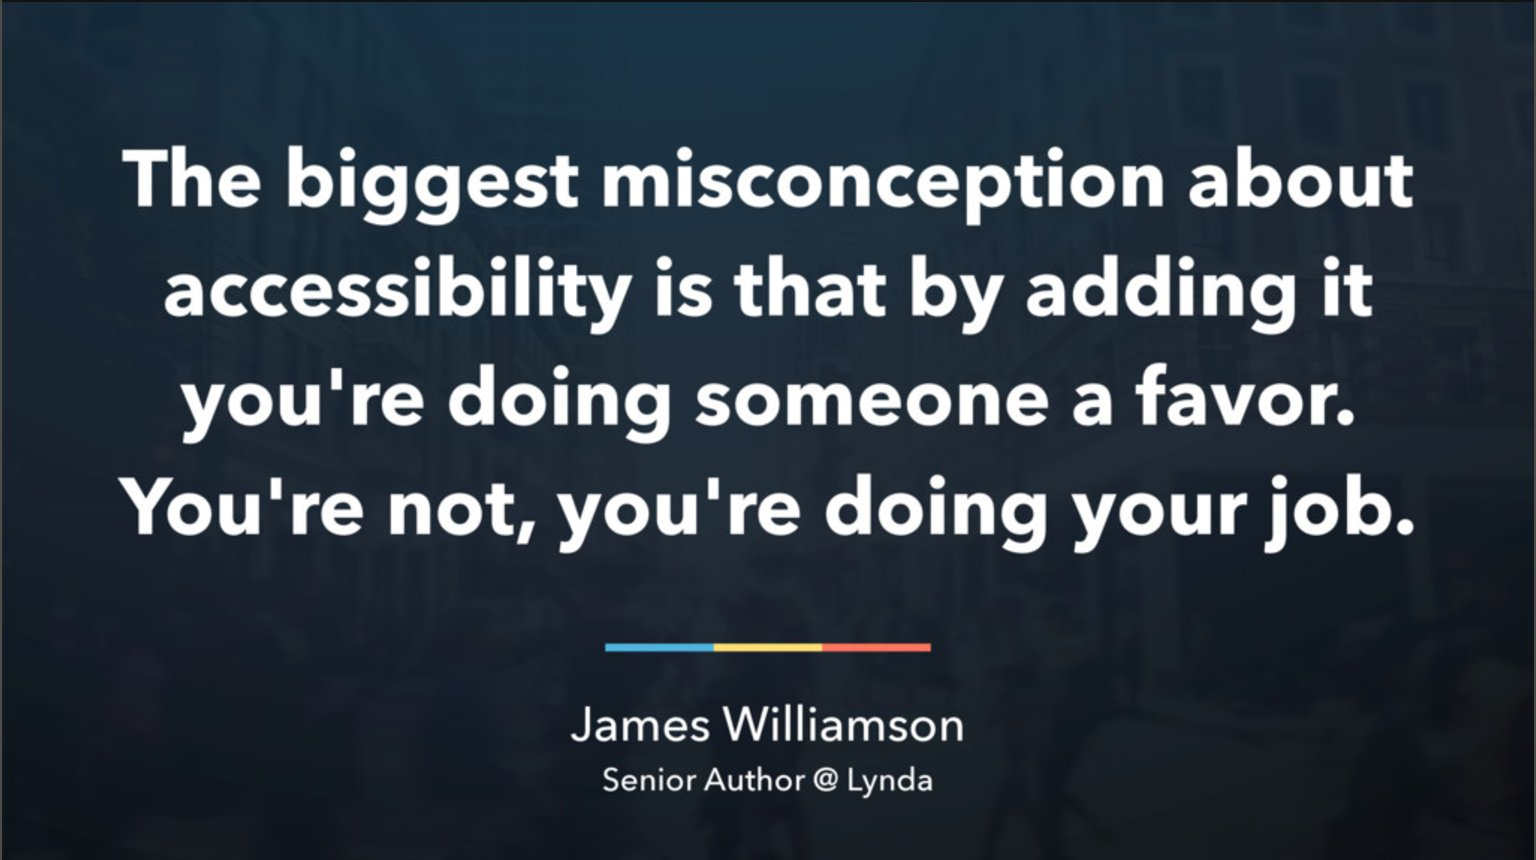 Quote from James Williamson, senior author at the company Lynda: The biggest misconception about accessibility is that by adding it you're doing someone a favor. you're not, you're doing your job.